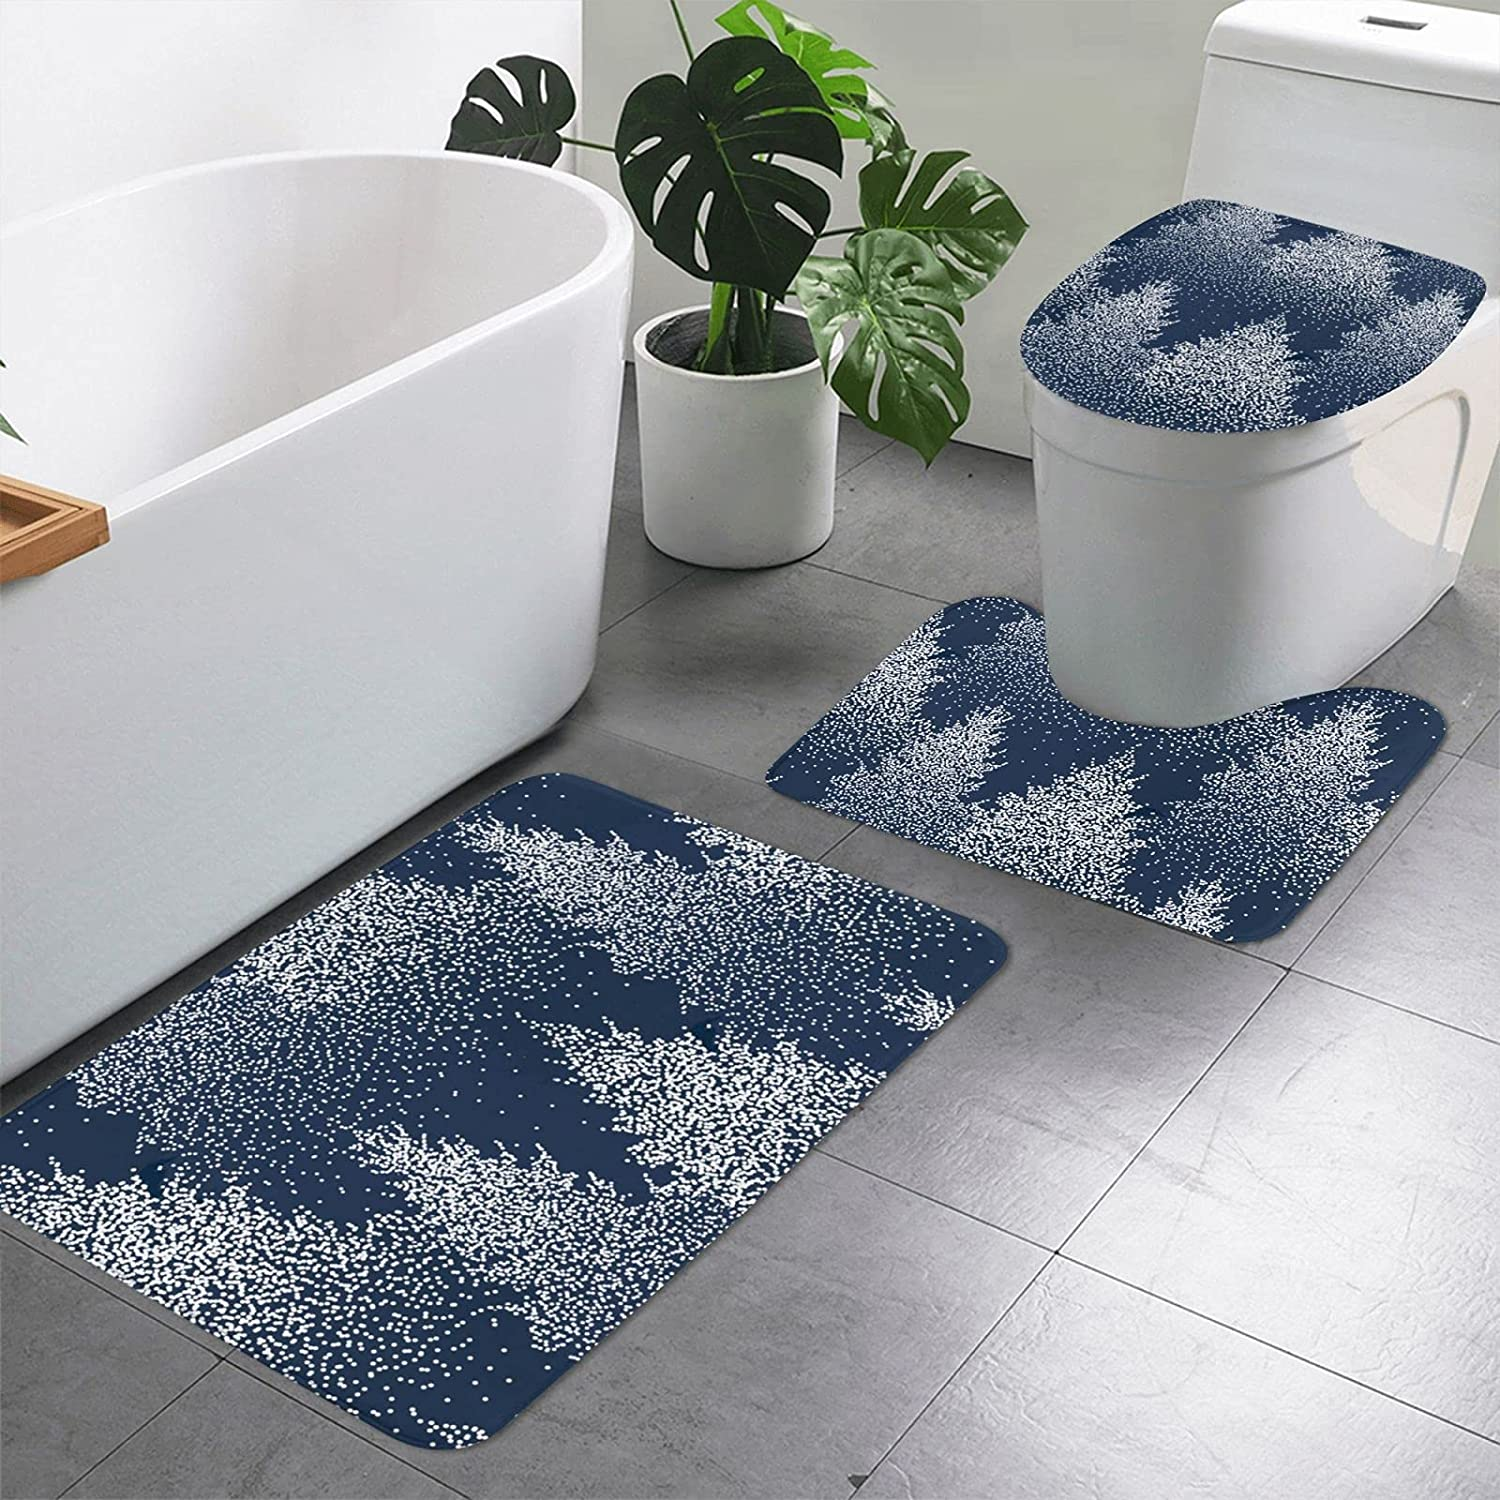 3 Pieces Bathroom Rug Set Includes 15.7 19.7 Bombing new work x Fort Worth Mall U-Shaped Inches